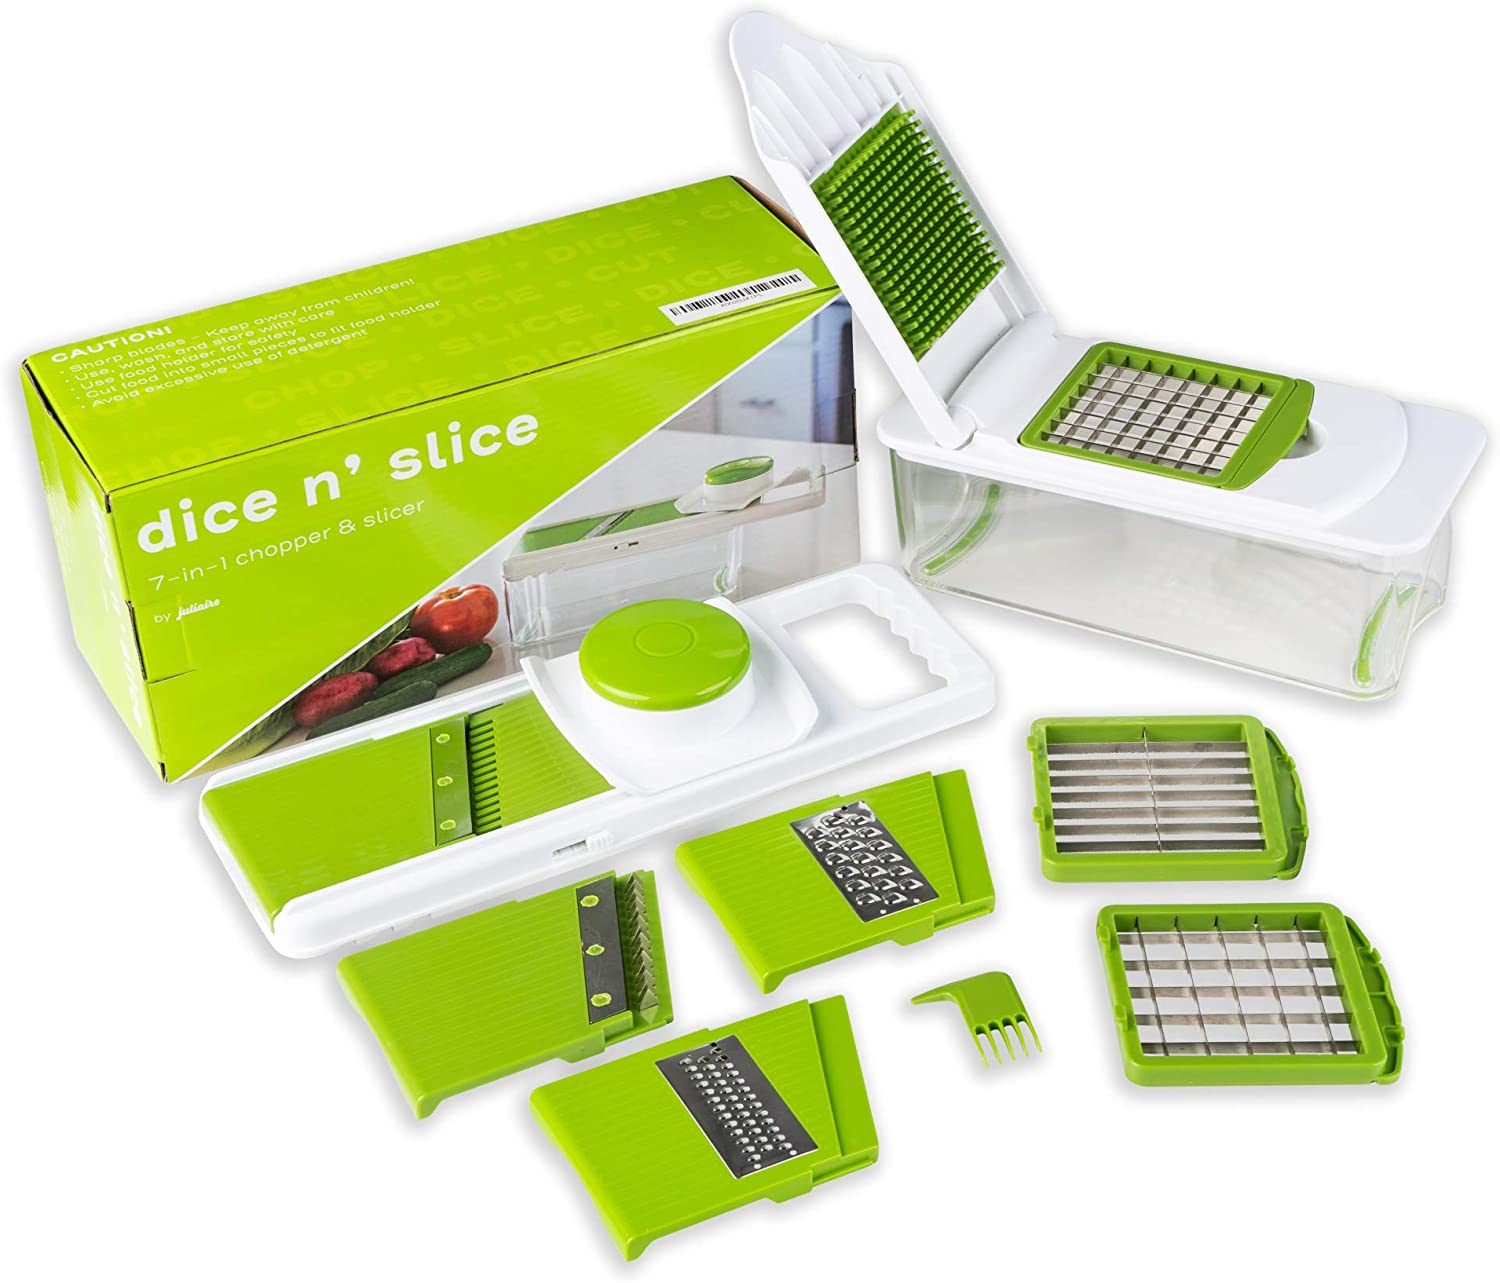 Dice n Slice Vegetable Chopper and Slicer, Kitchen Gadget with Grater, Mandoline, and More